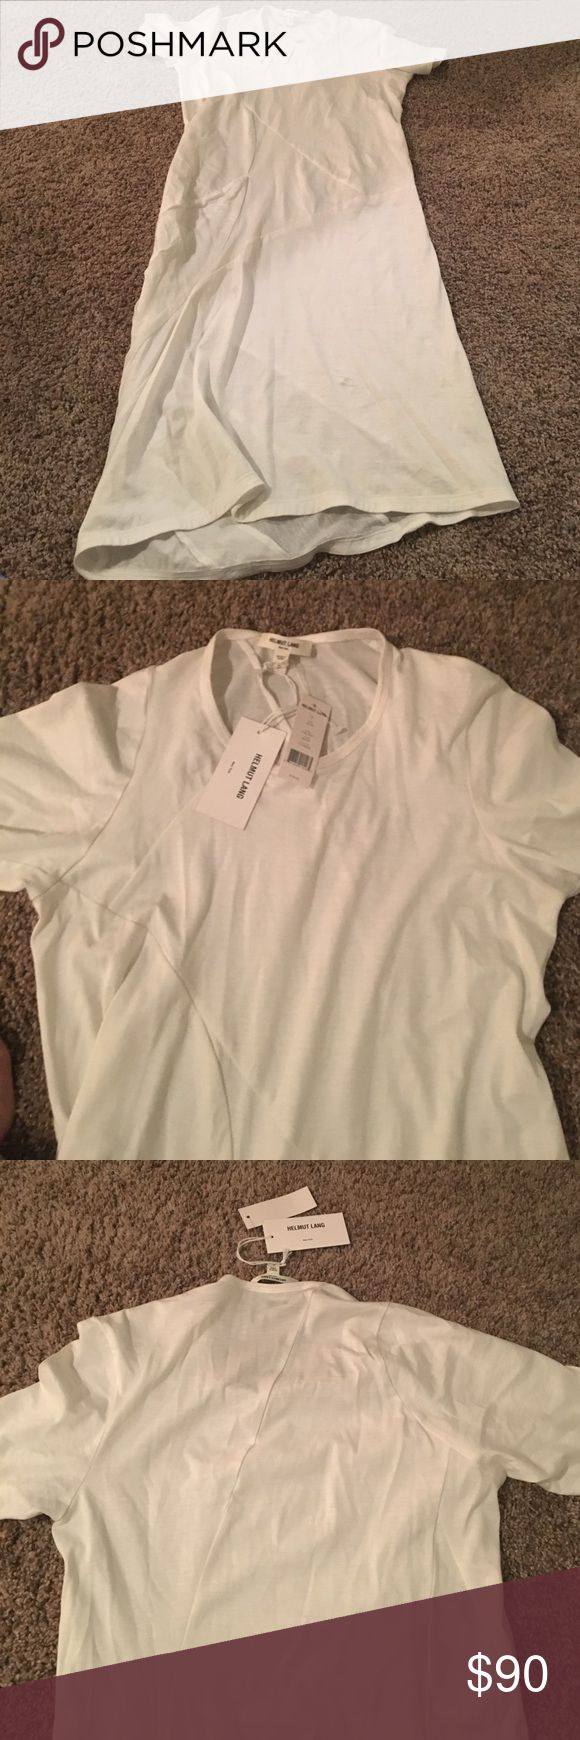 NWT helmut Lang long white short sleeve top NWT white long short sleeve cotton jersey helmut Lang top in size P which is XS. The top has such detail and really is a great fabric. Originally $185. Open to offers! Helmut Lang Tops Tees - Short Sleeve